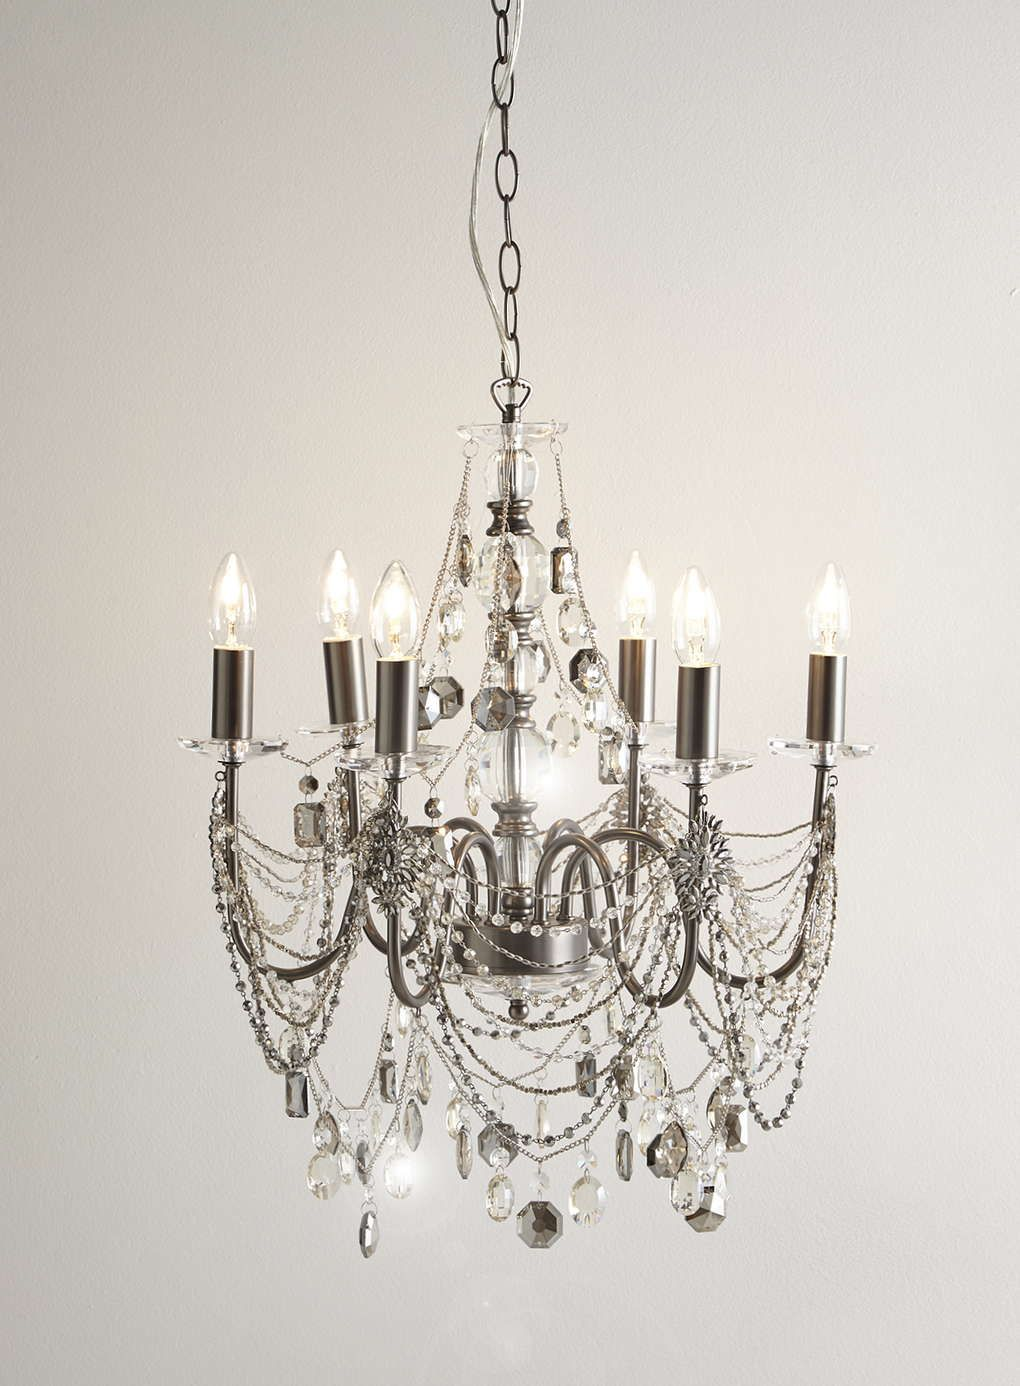 Photo 2 of smoke everly black chandelier lighting pinterest photo 2 of smoke everly black chandelier aloadofball Image collections